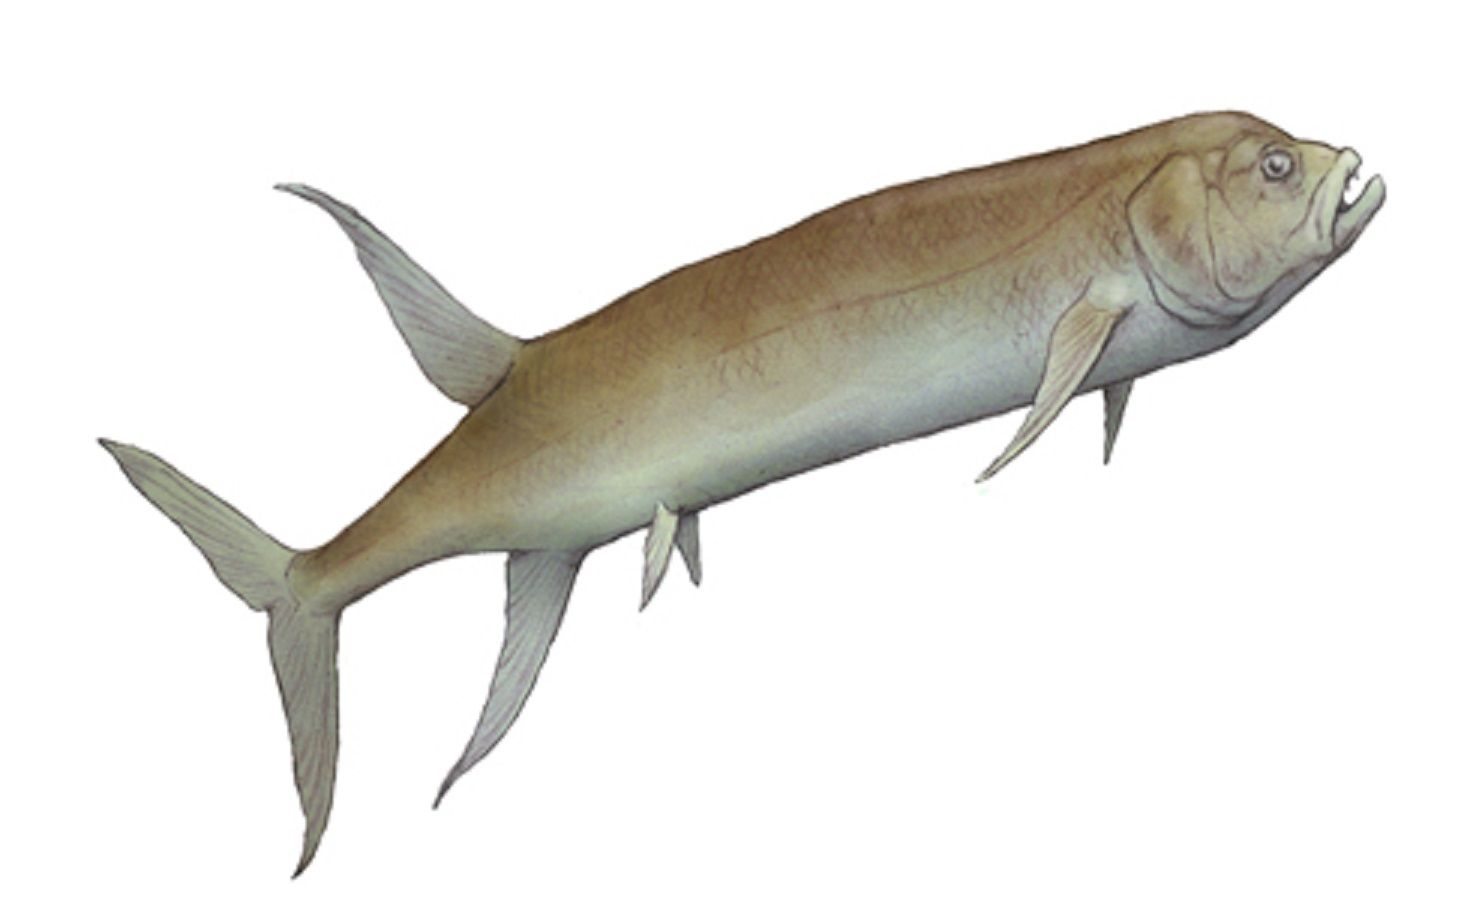 Art illustration - Aquatic animals - Gillicus arcuatus: was a relatively small, Ichthyodectidae fish of 2 meters long, living in the Western Interior Sea in what is now the center of North America during the Late Cretaceous. Like its larger relative, Ichthyodectes ctenodon, the Gillicus arcuatus had numerous small teeth covering their jaws, was a fish 6 feet (1.8 m) long.